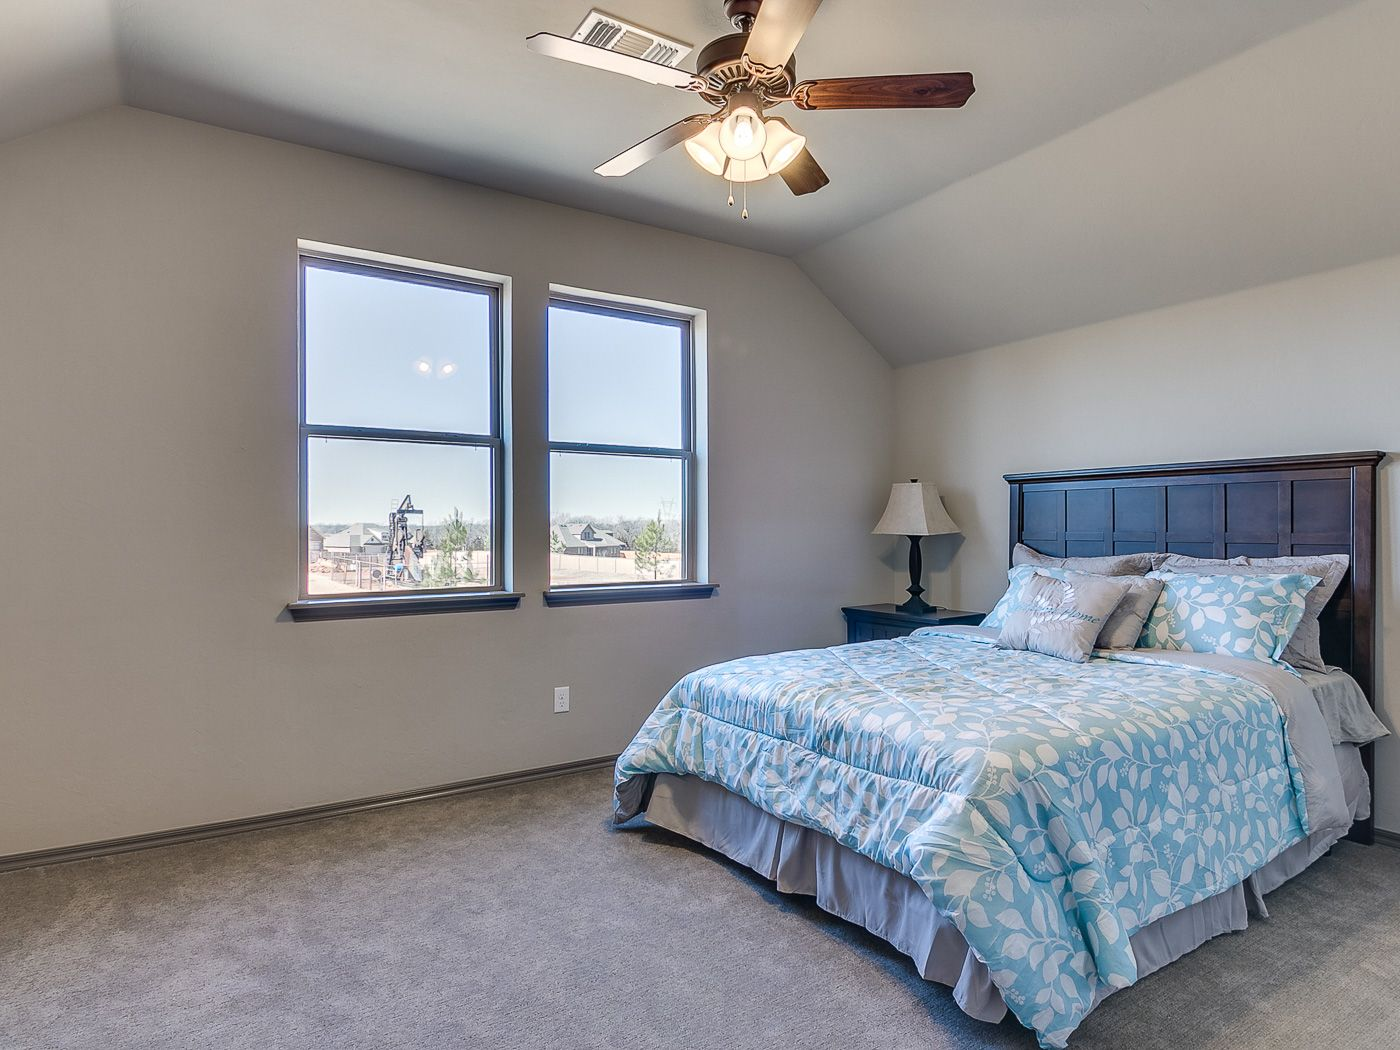 Bedroom featured in the Ashworth By Ideal Homes in Oklahoma City, OK